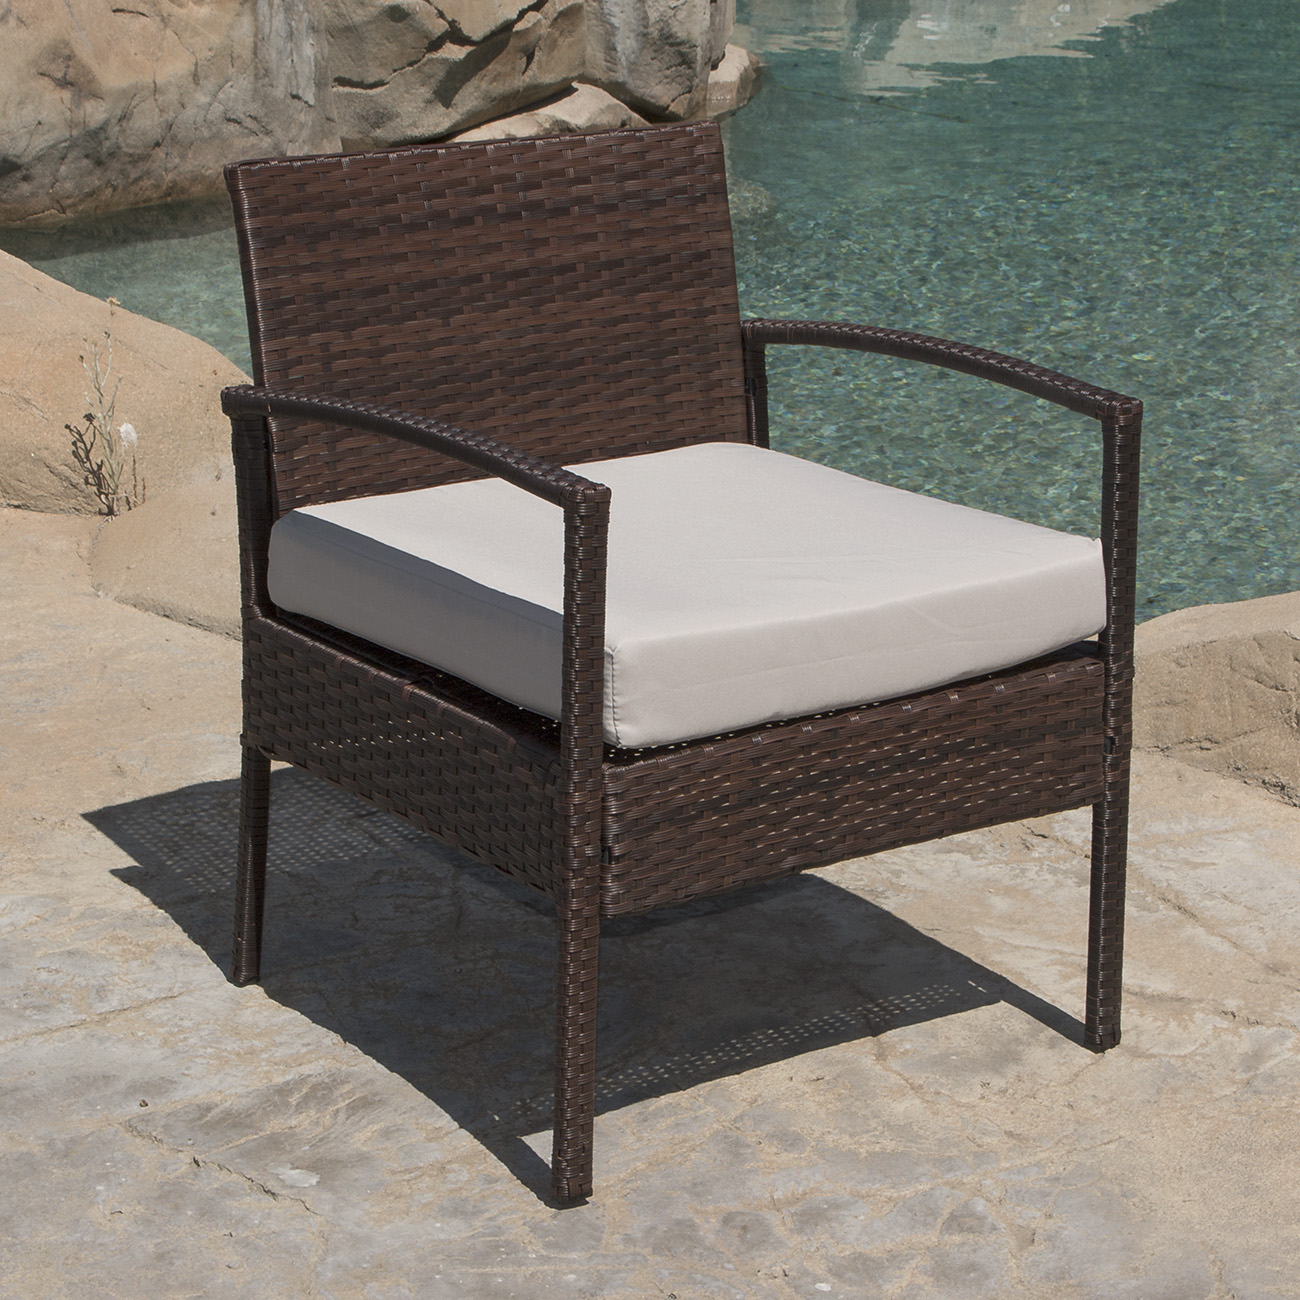 Wicker Rattan Chair 3 Pcs Outdoor Rattan Wicker Patio Chat Chairs And Table